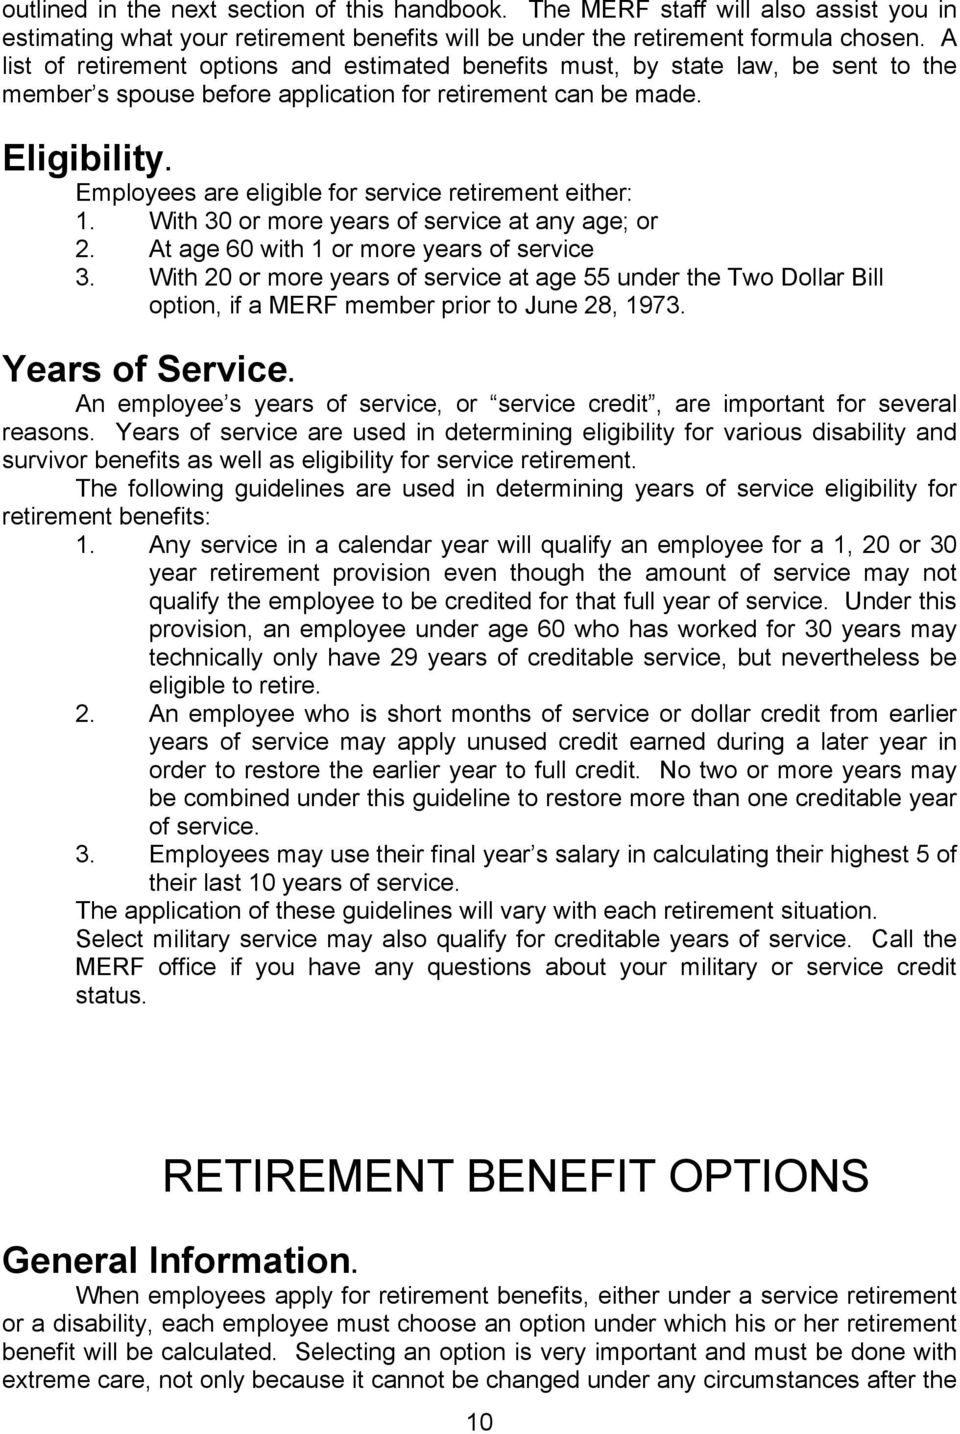 Employees are eligible for service retirement either: 1. With 30 or more years of service at any age; or 2. At age 60 with 1 or more years of service 3.